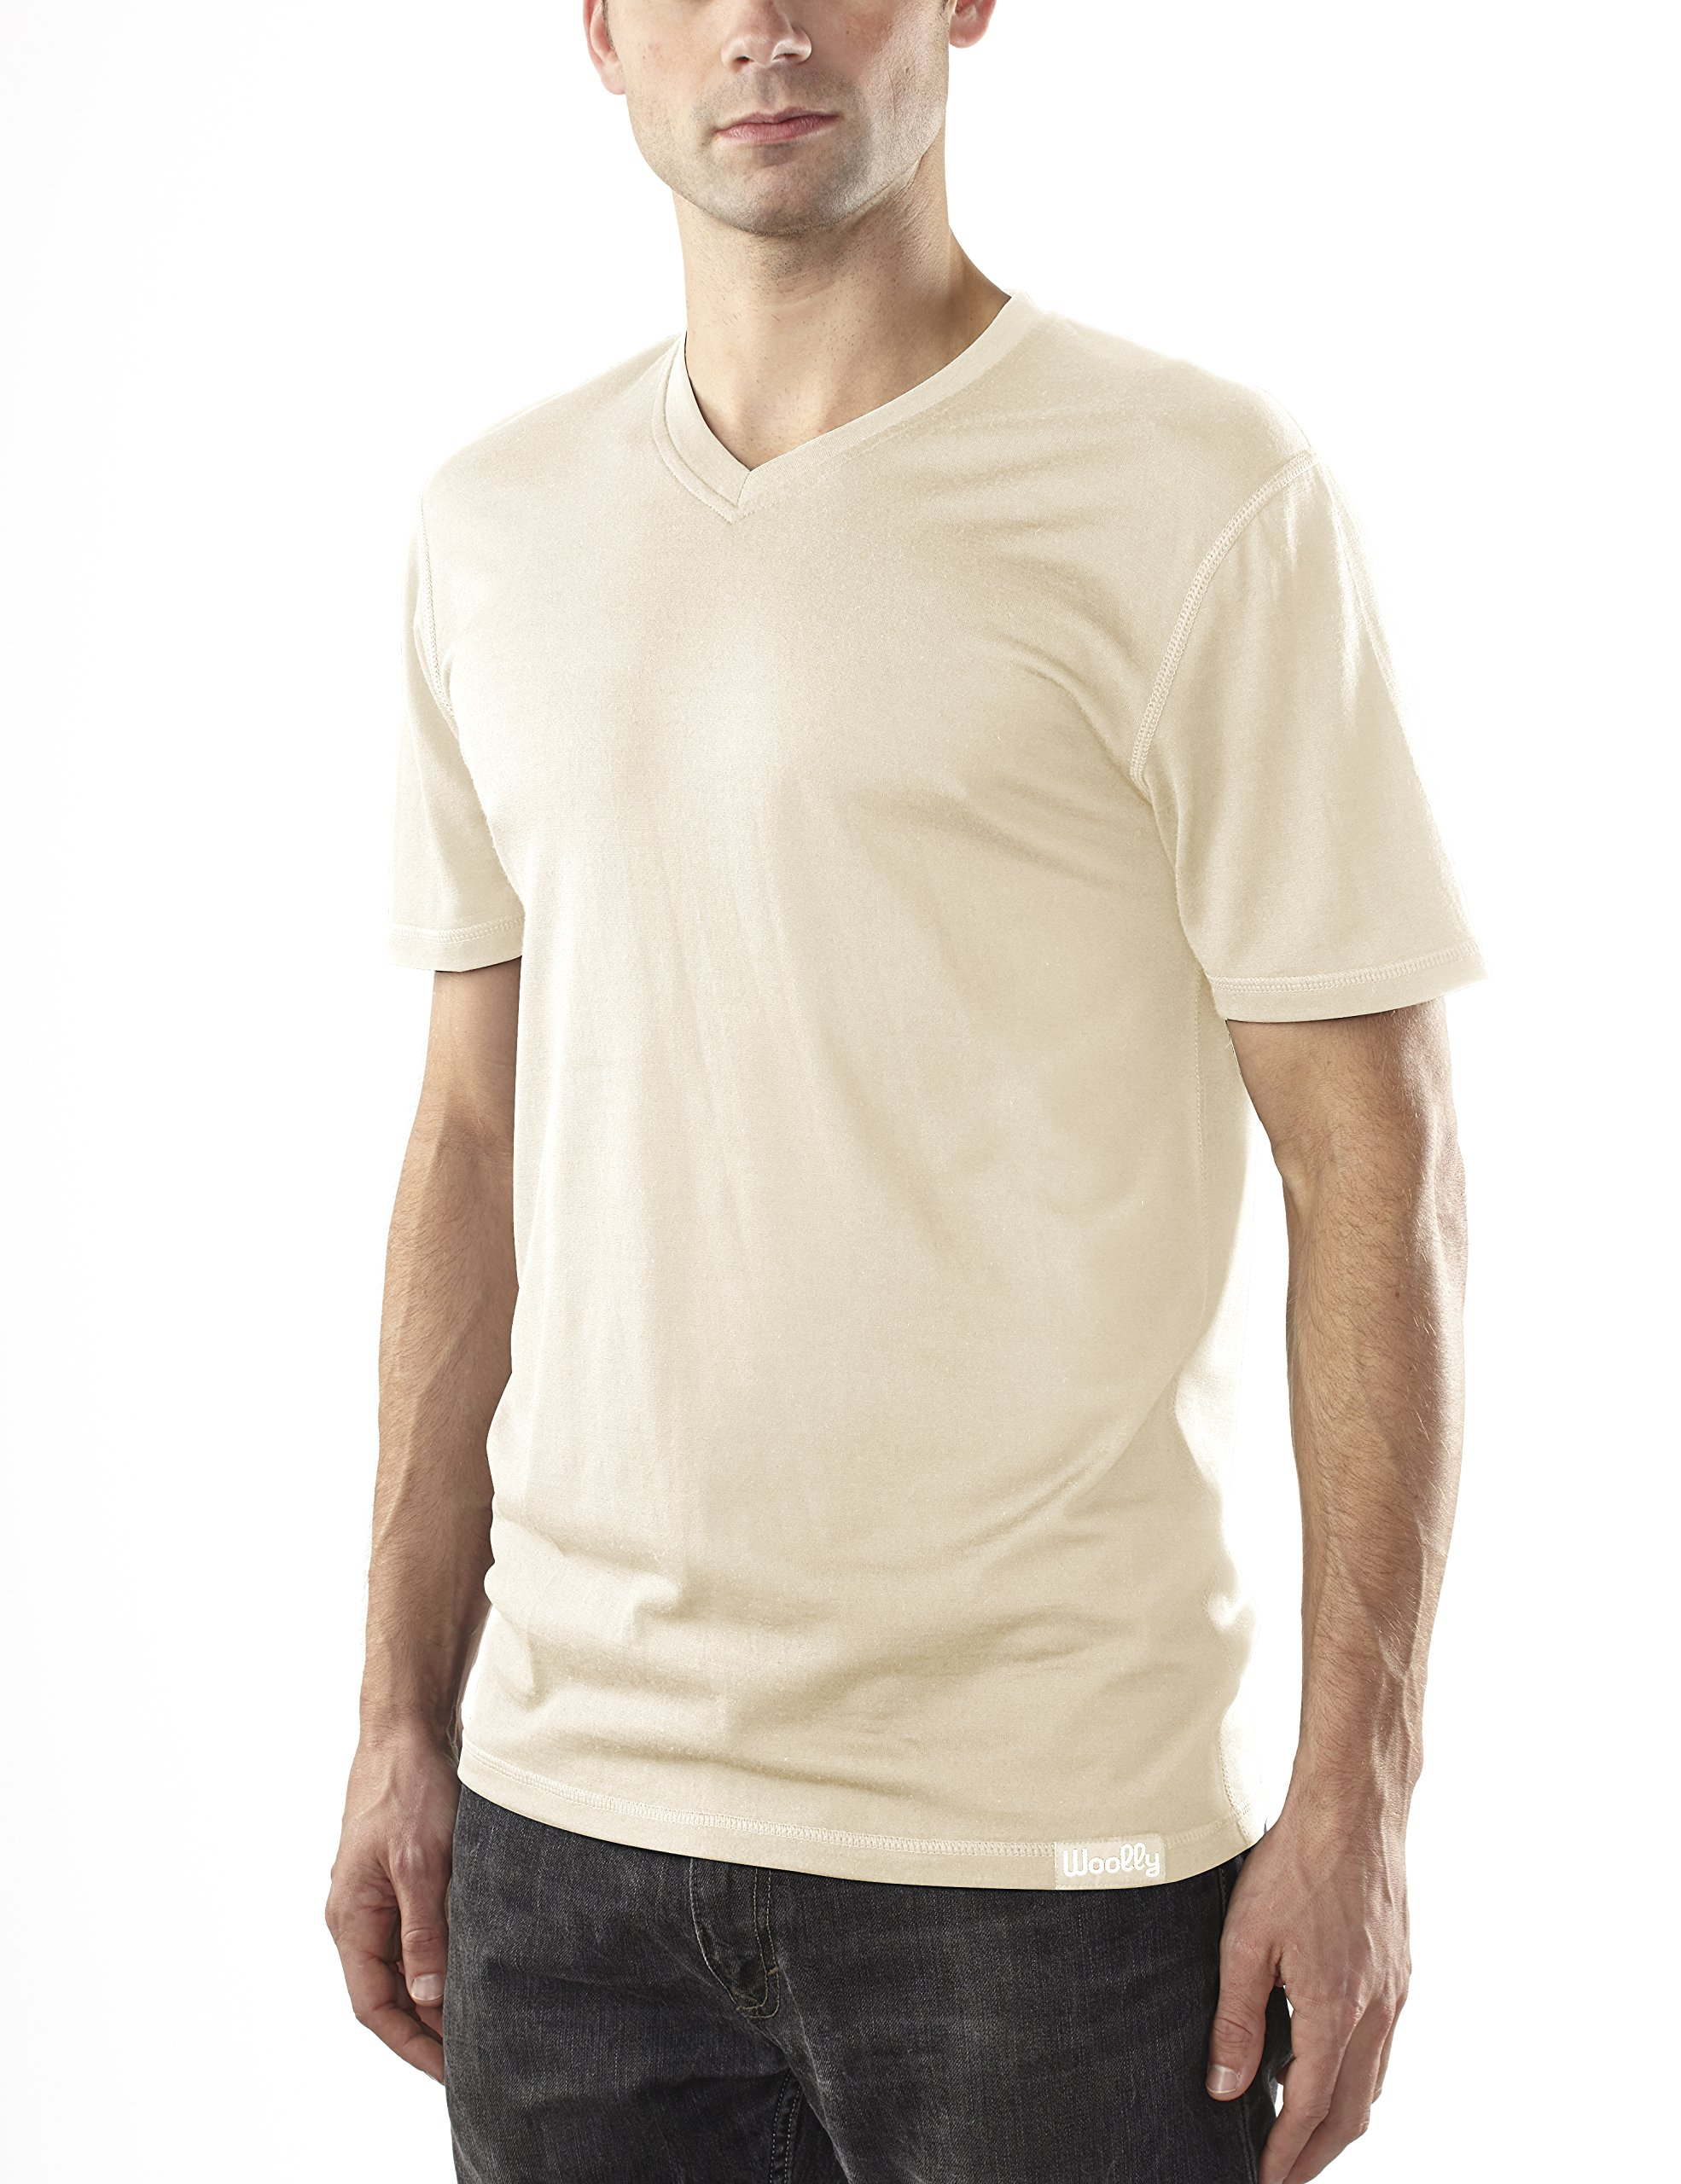 Woolly Clothing Co Men's Merino Wool V-Neck Hiking and Travel T-Shirt,Linen,Large